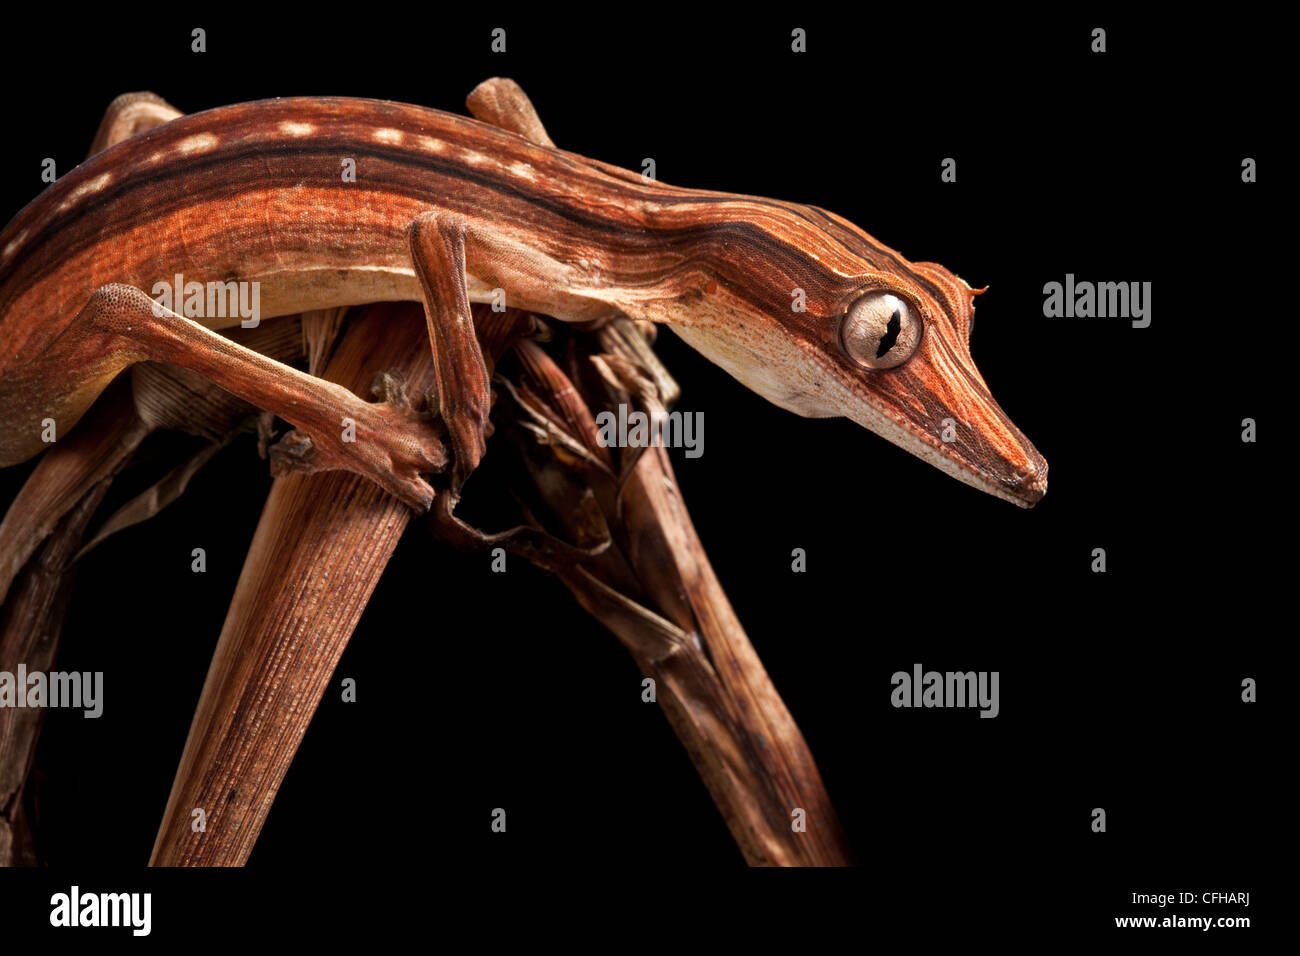 Lined Leaf-tailed Gecko showing darker nocturanal colouration, camouflaged amongst dead palm fronds, Madagascar - Stock Image